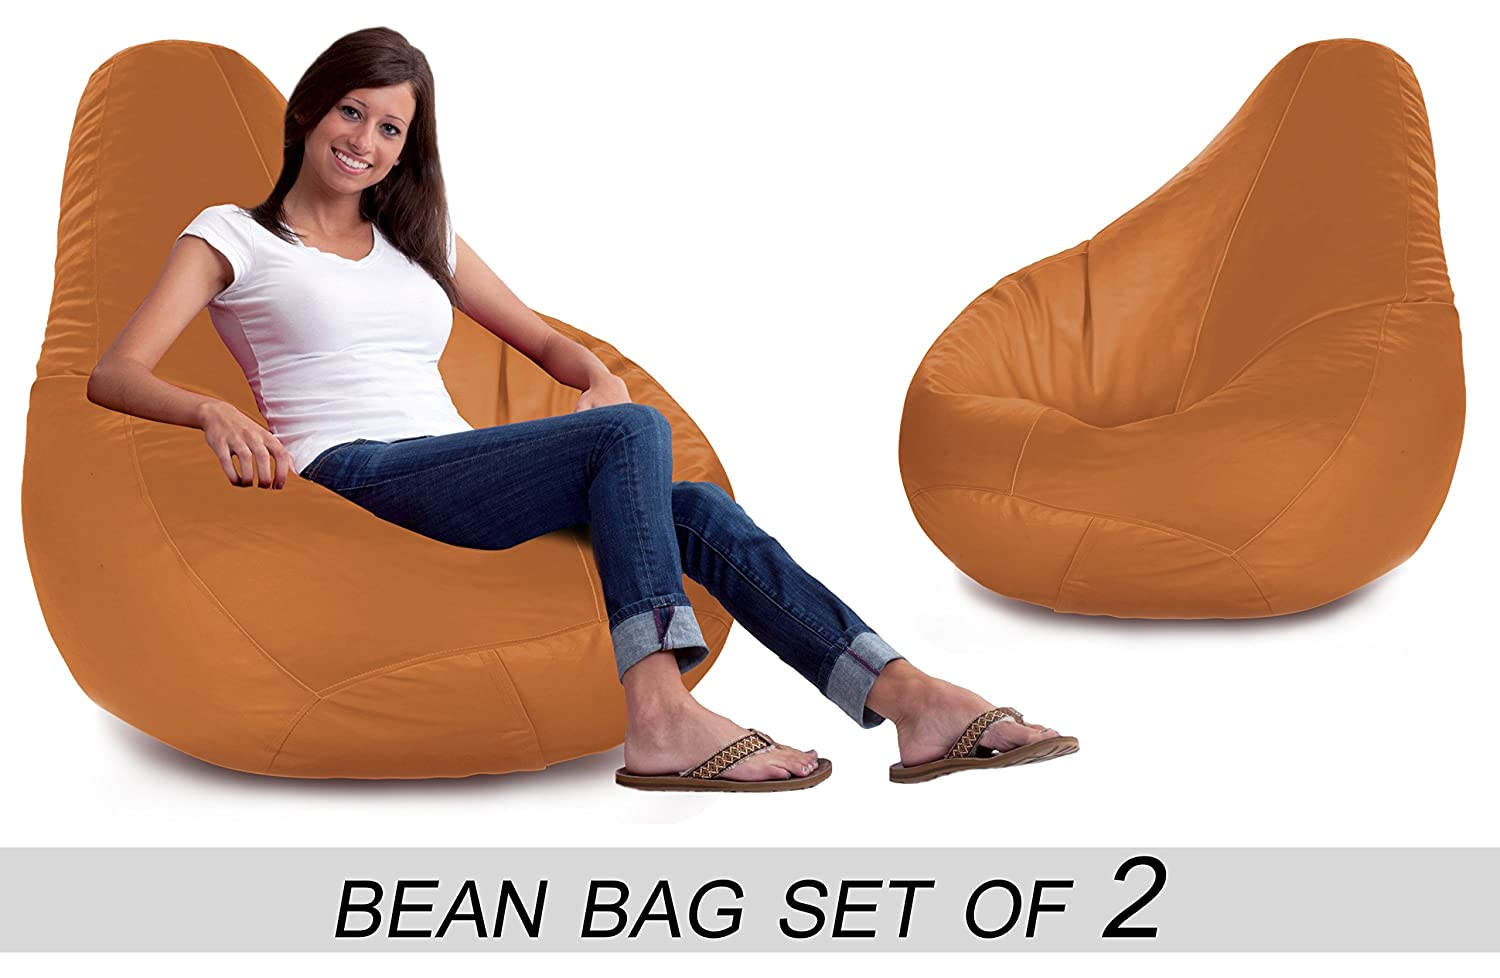 Bedspun Set Of 2 Faux Leather Bean Bag Without Beans Tan XXL Amazonin Home Kitchen